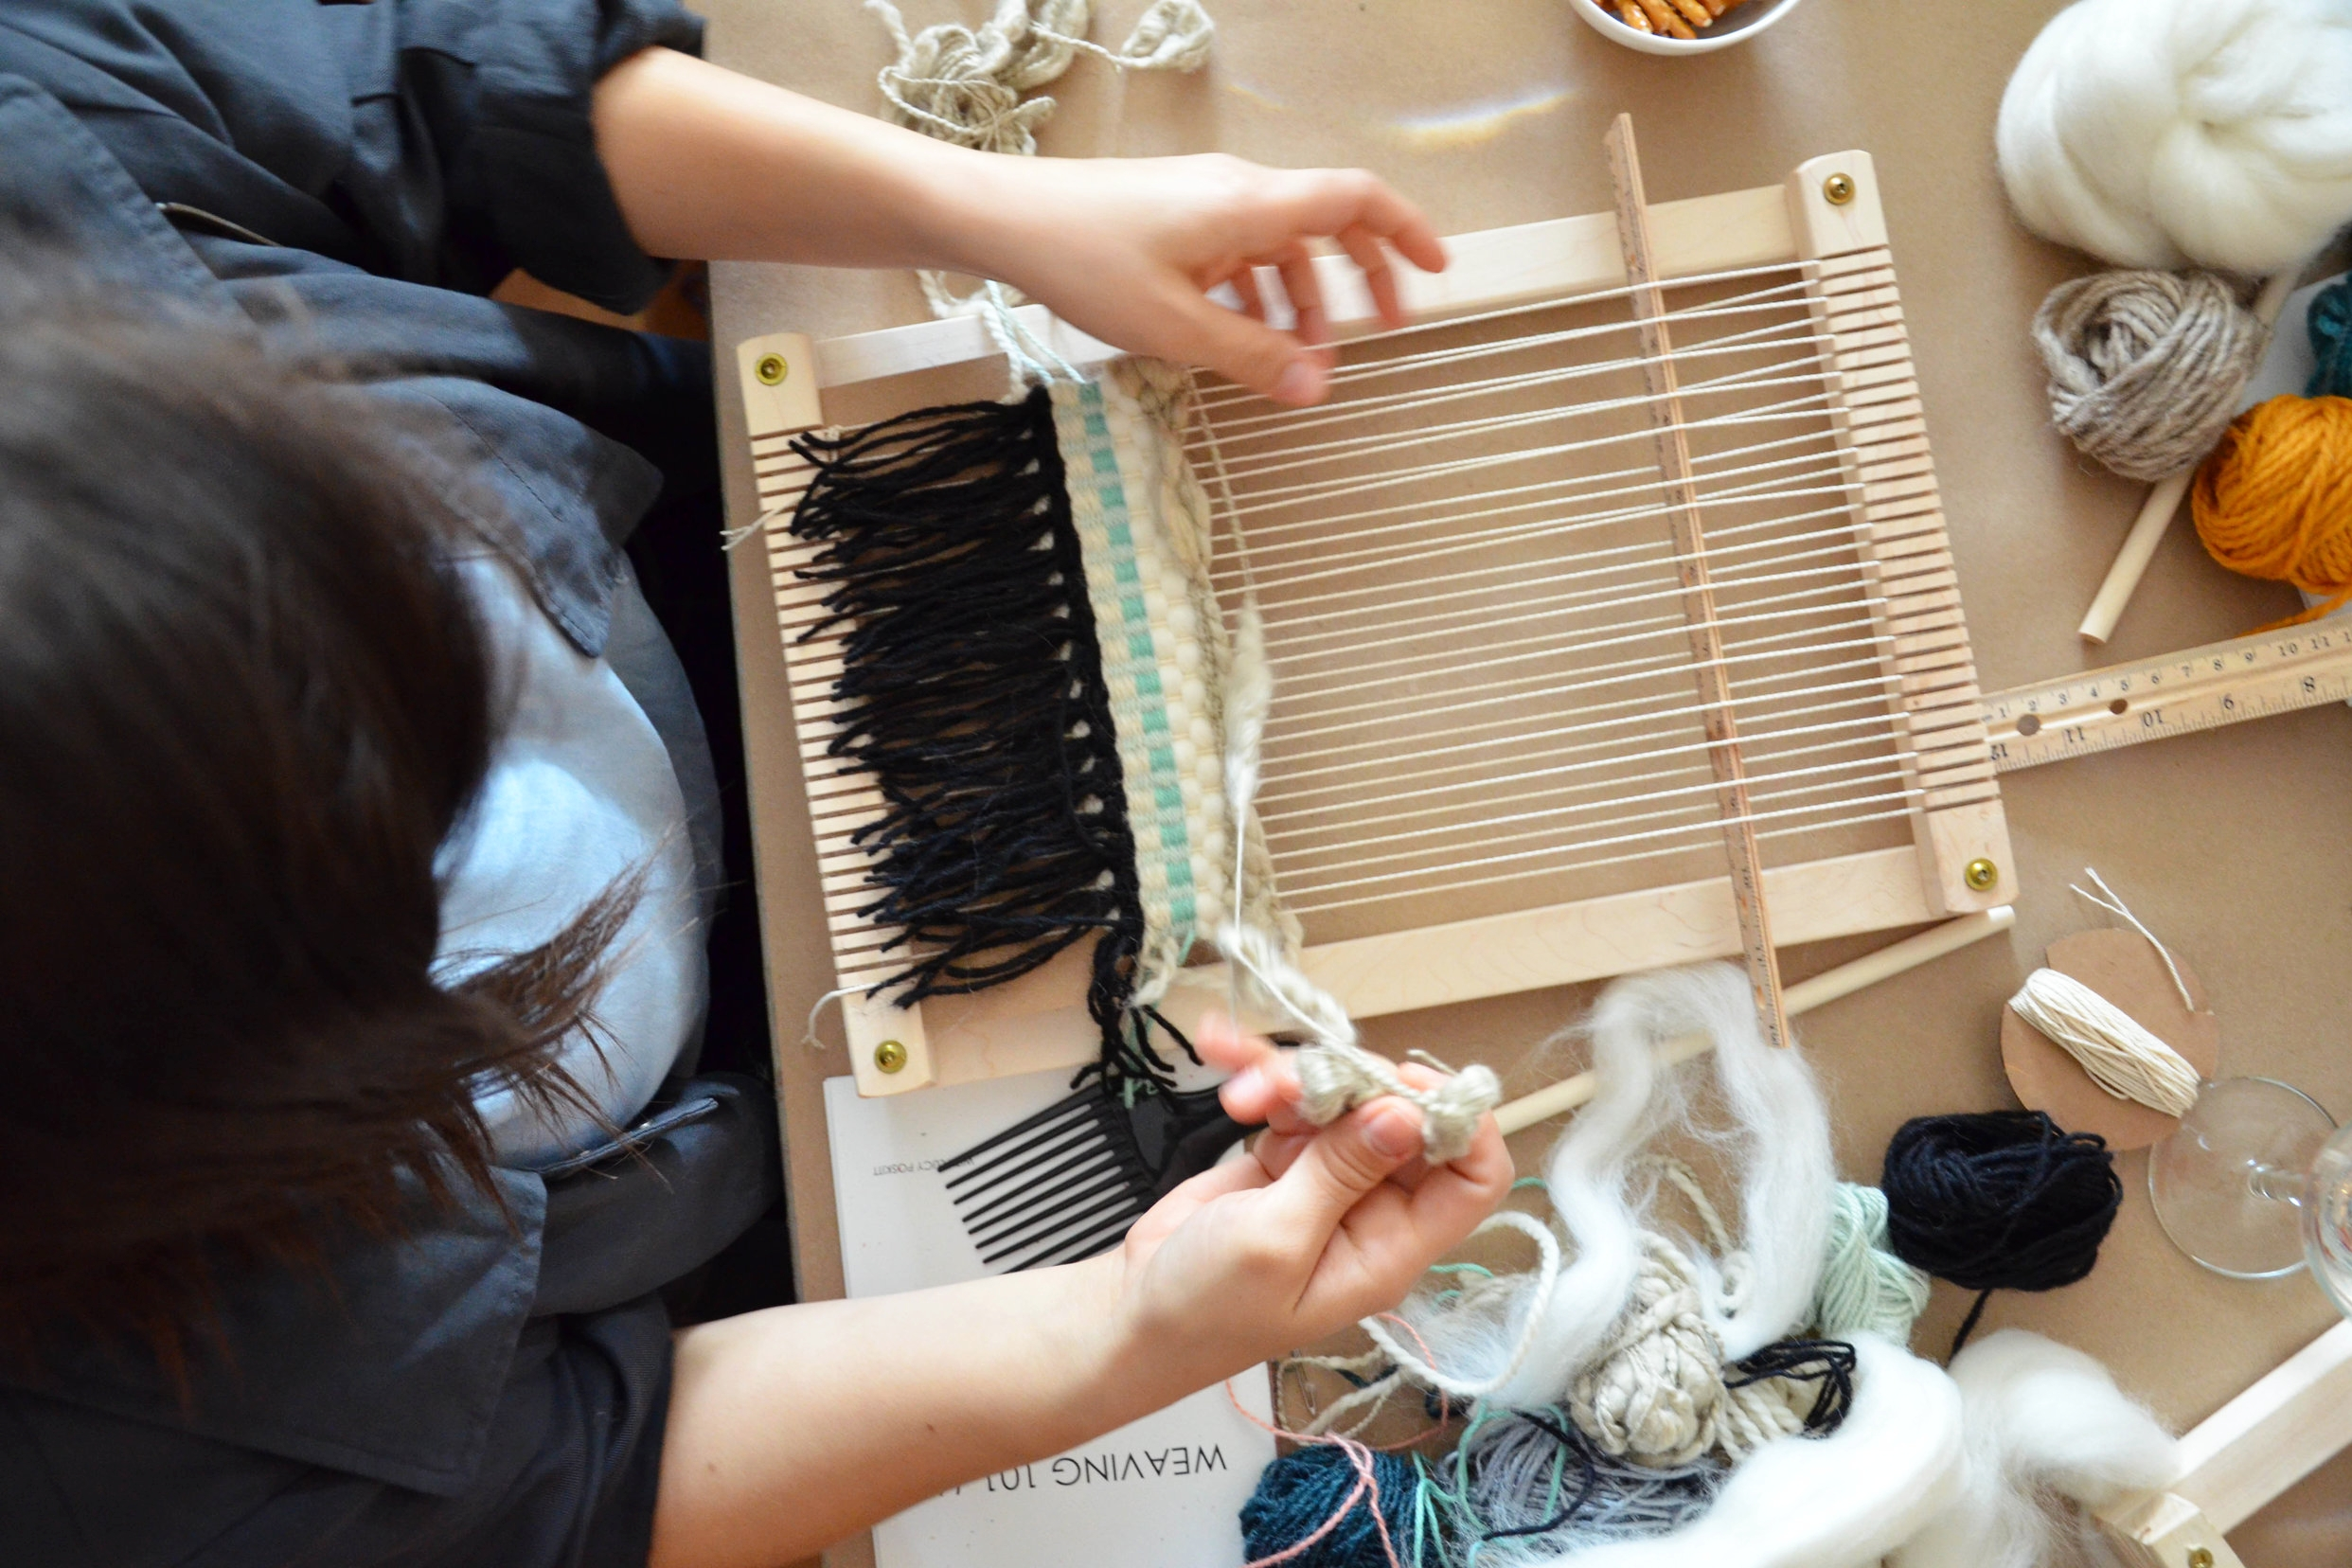 learn to weave - weaving workshops in vancouver and victoria bc by Lucy Poskitt